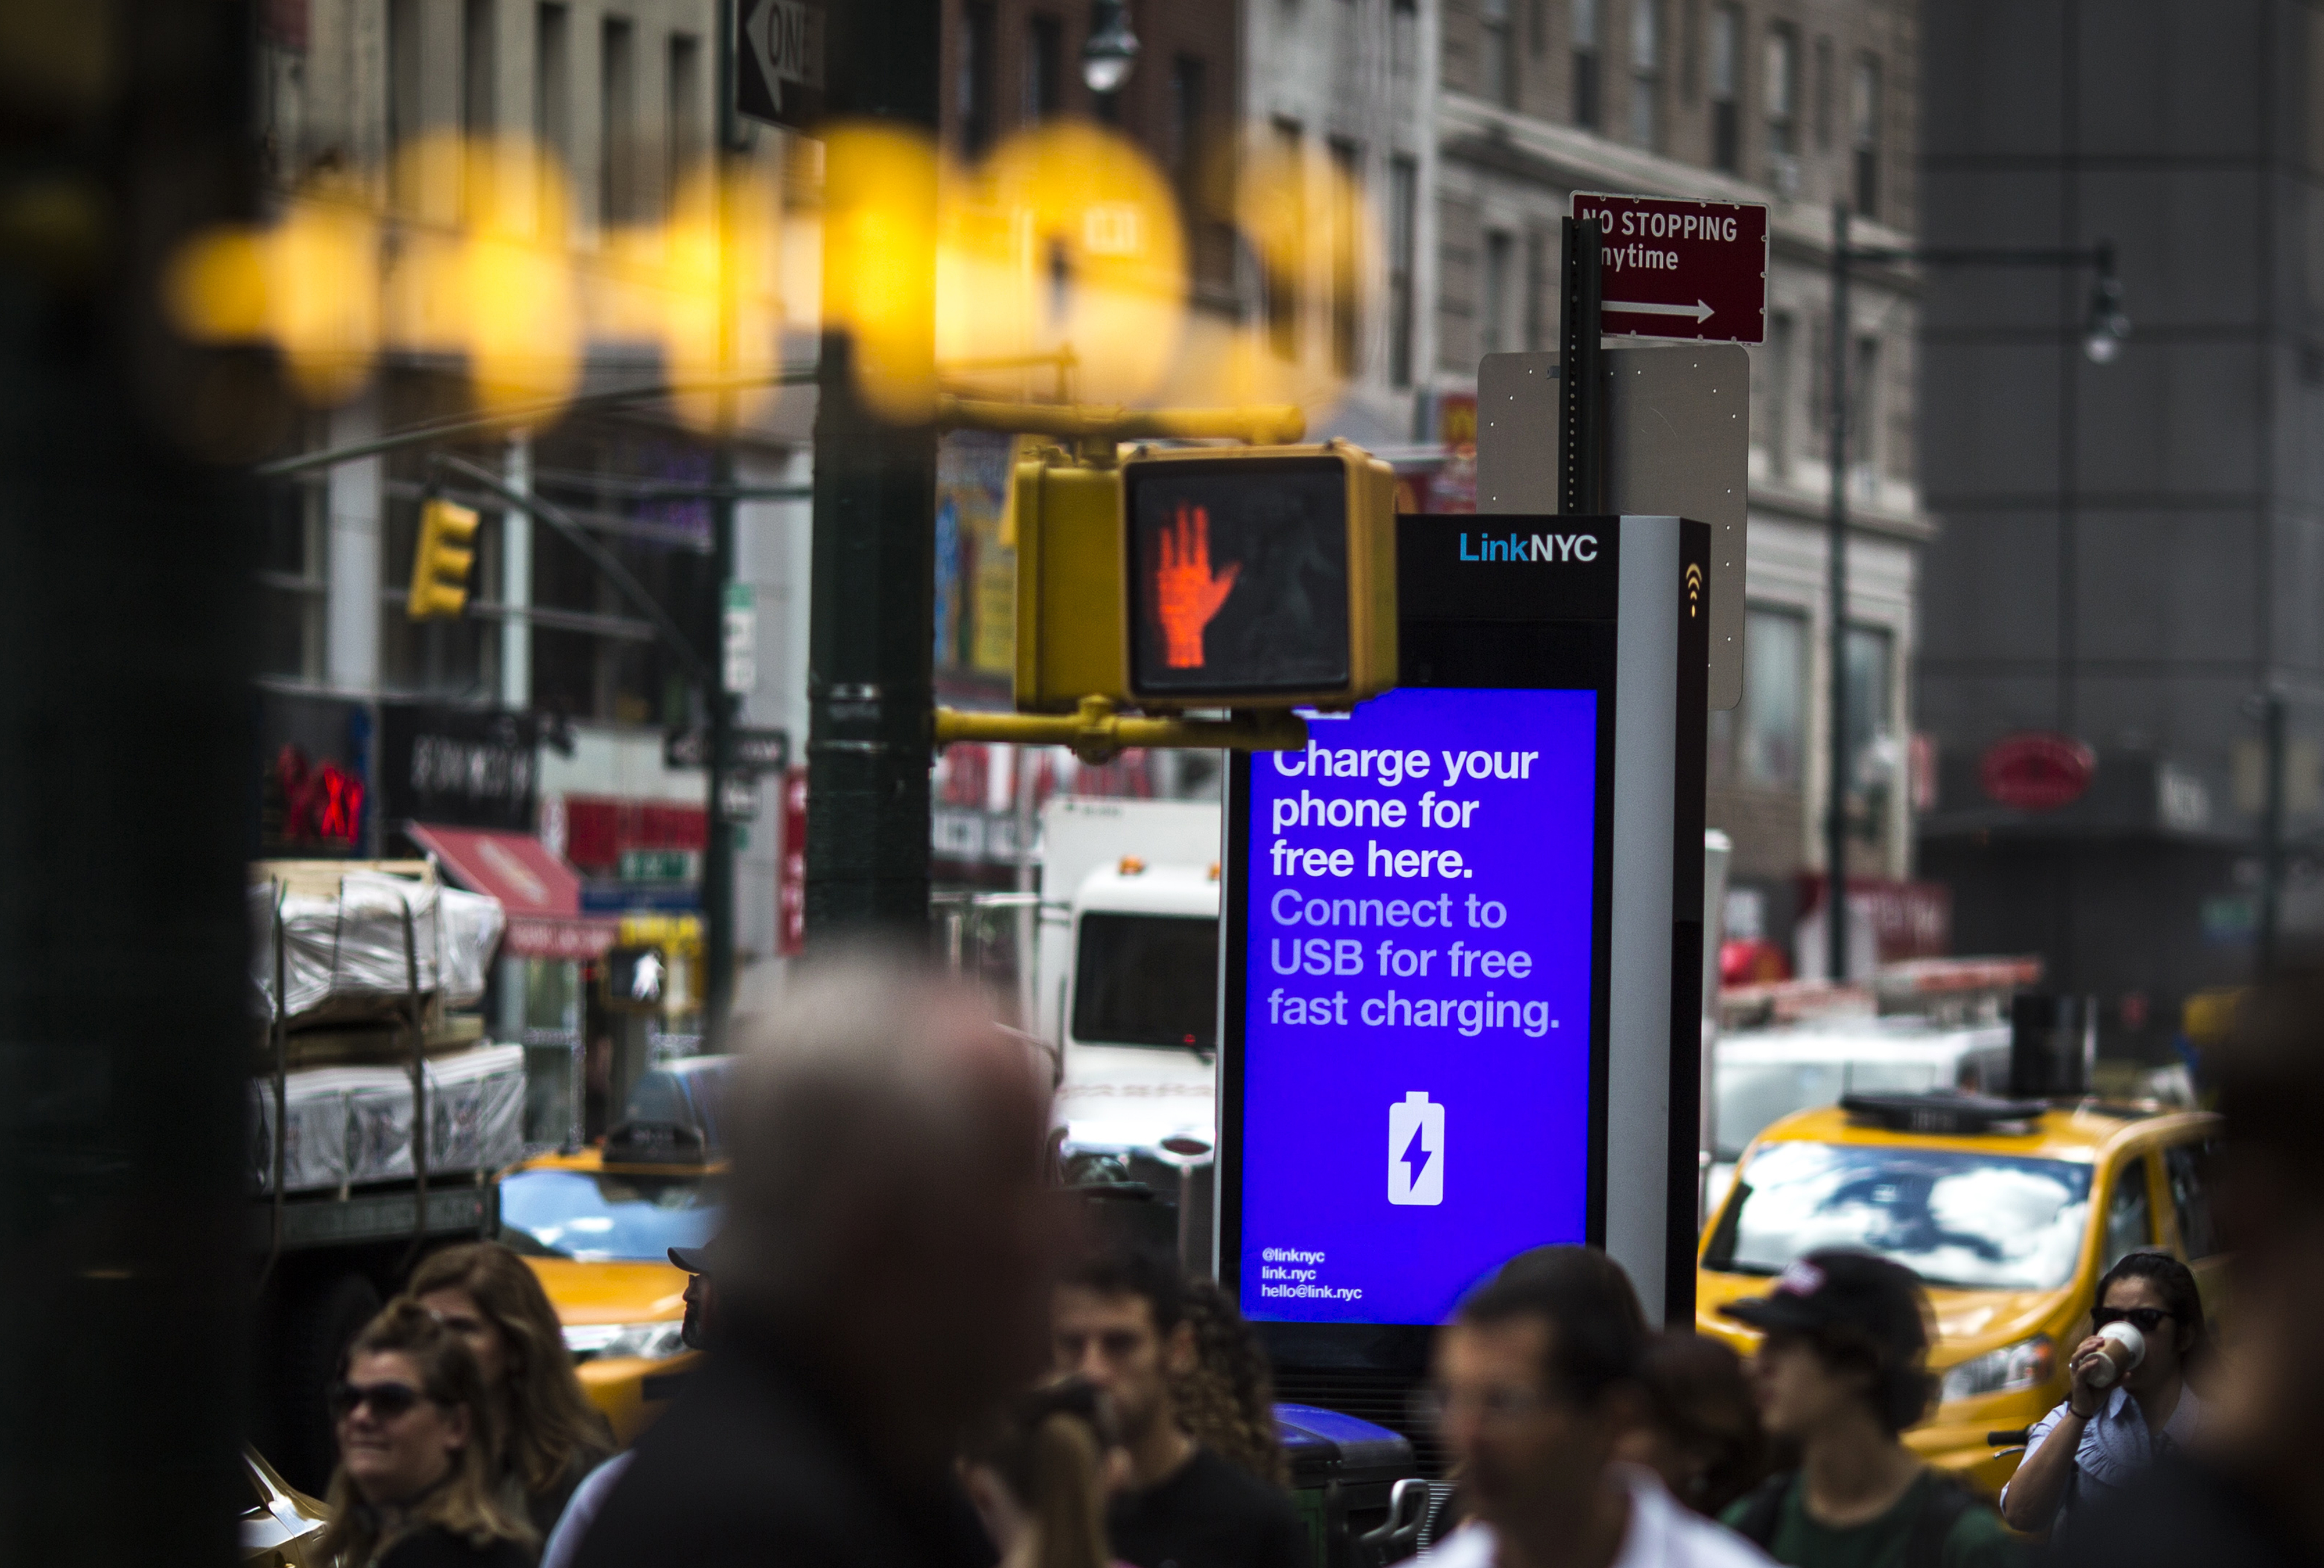 LinkNYC's Internet Kiosks As Web Browsing Capabilities Will Be Disabled